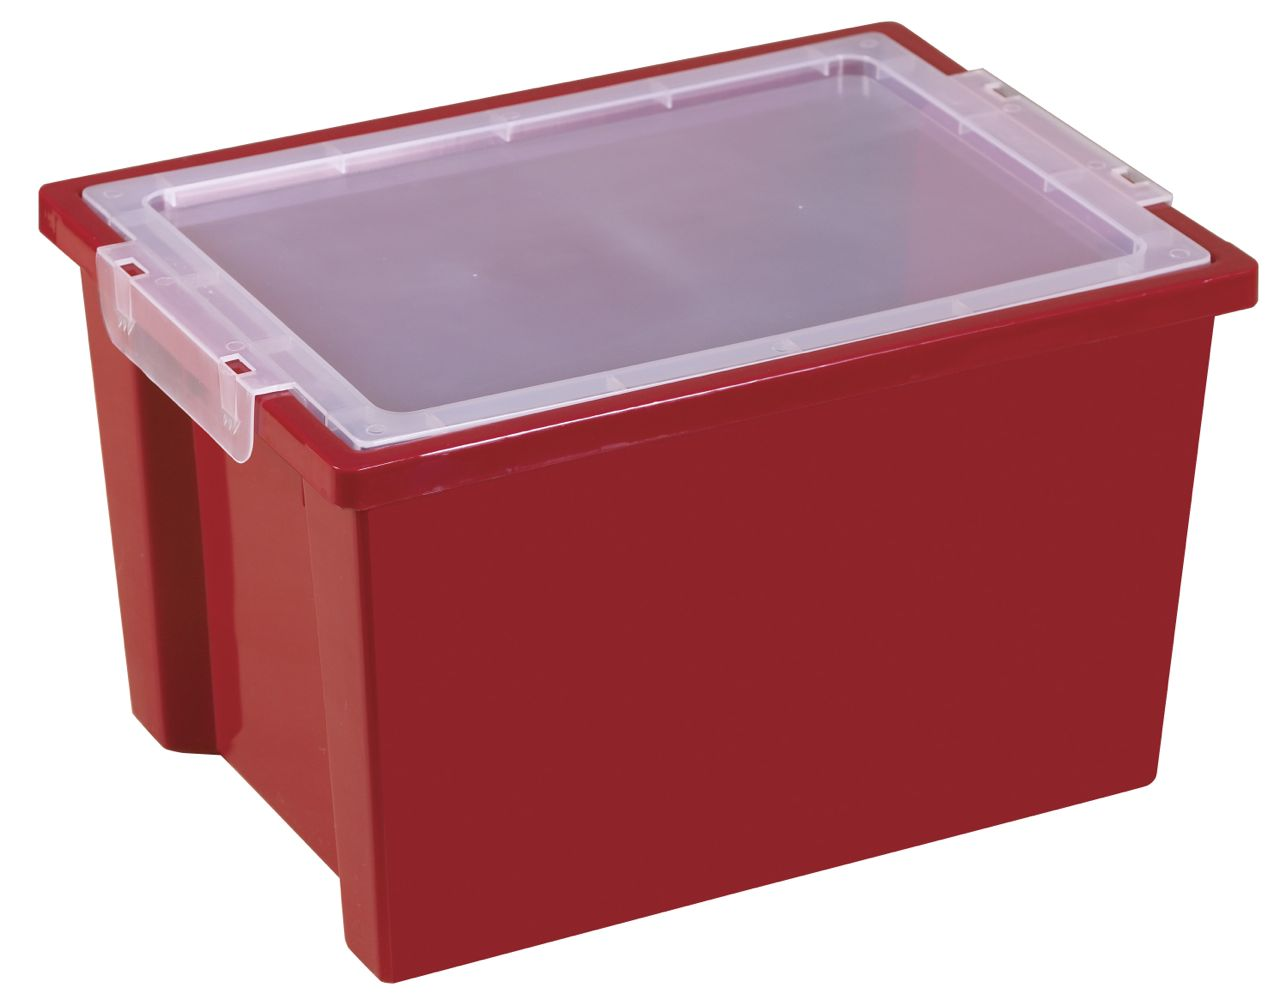 Beautiful Plastic Storage Bins With Lids - elr_0723_rd__73014  Photograph_722496.jpg